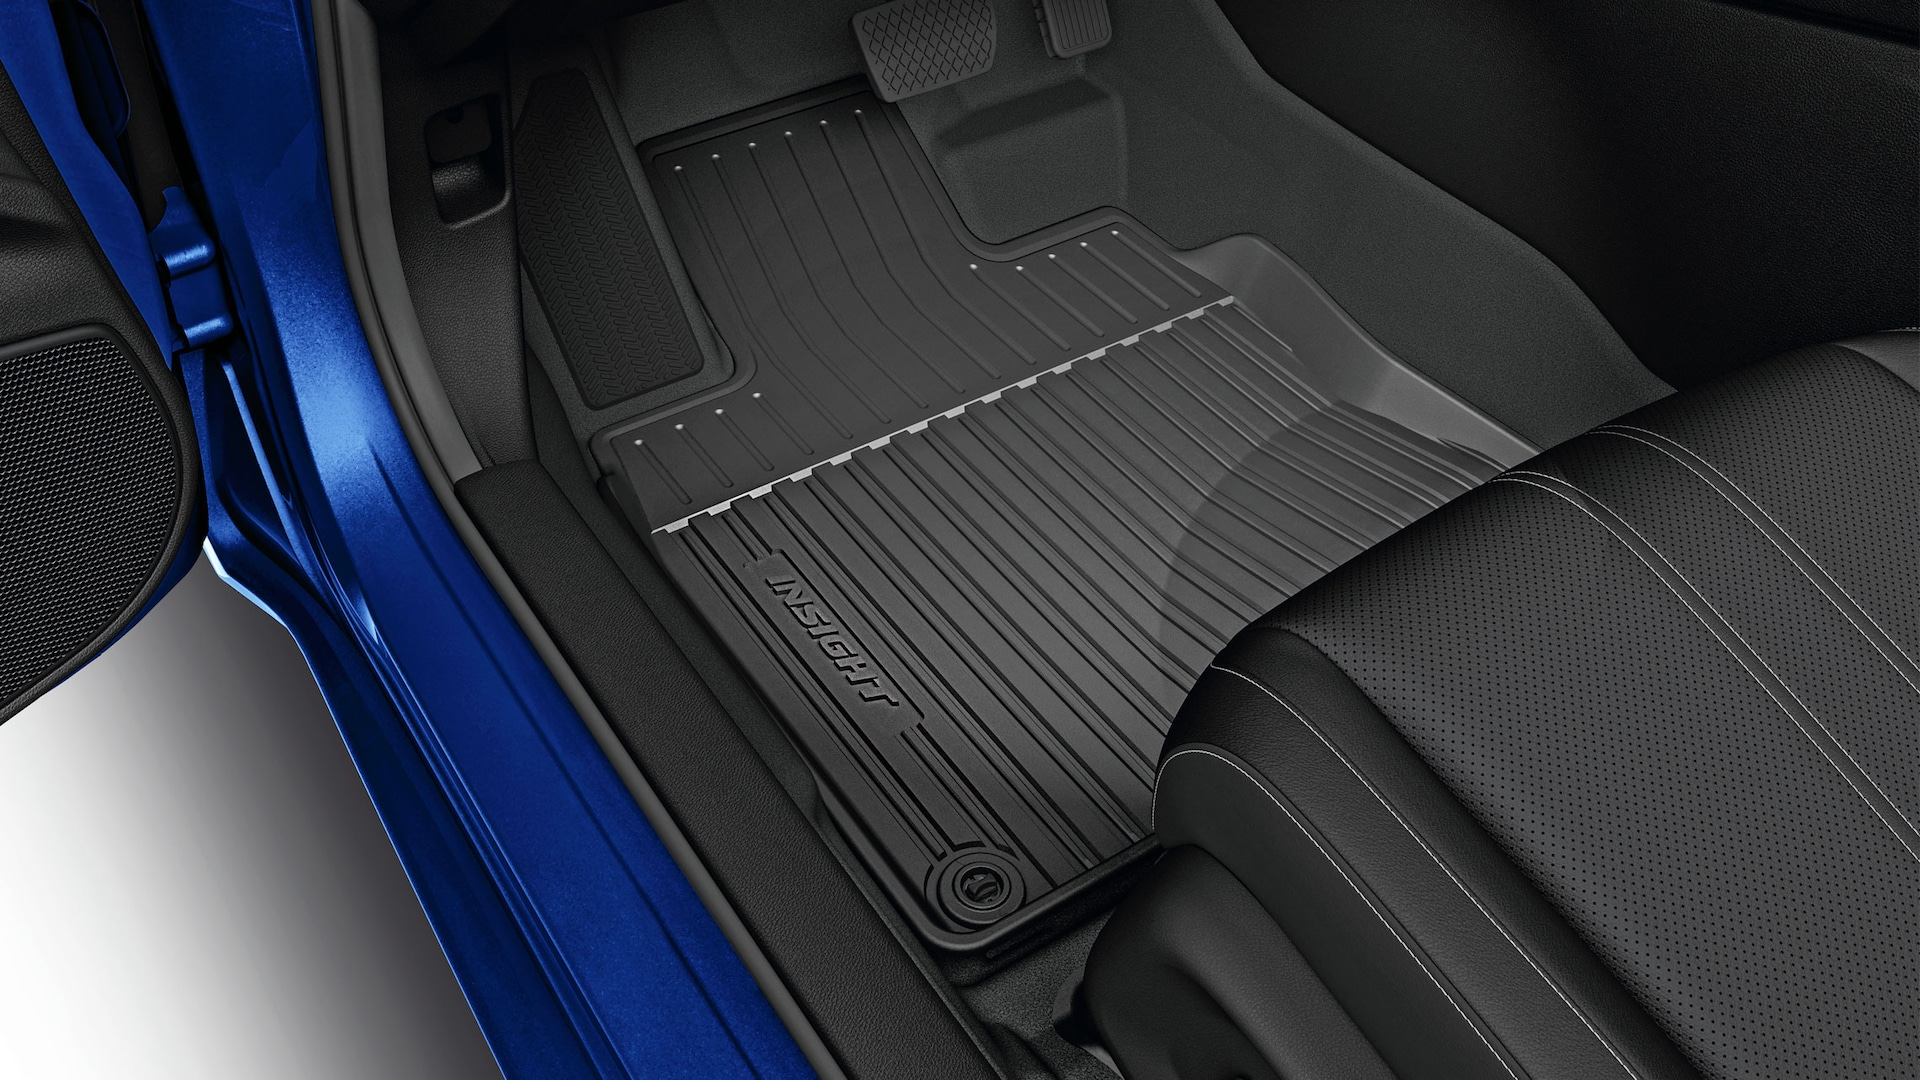 All season floor mat detail on 2020 Honda Insight in Aegean Blue Metallic.